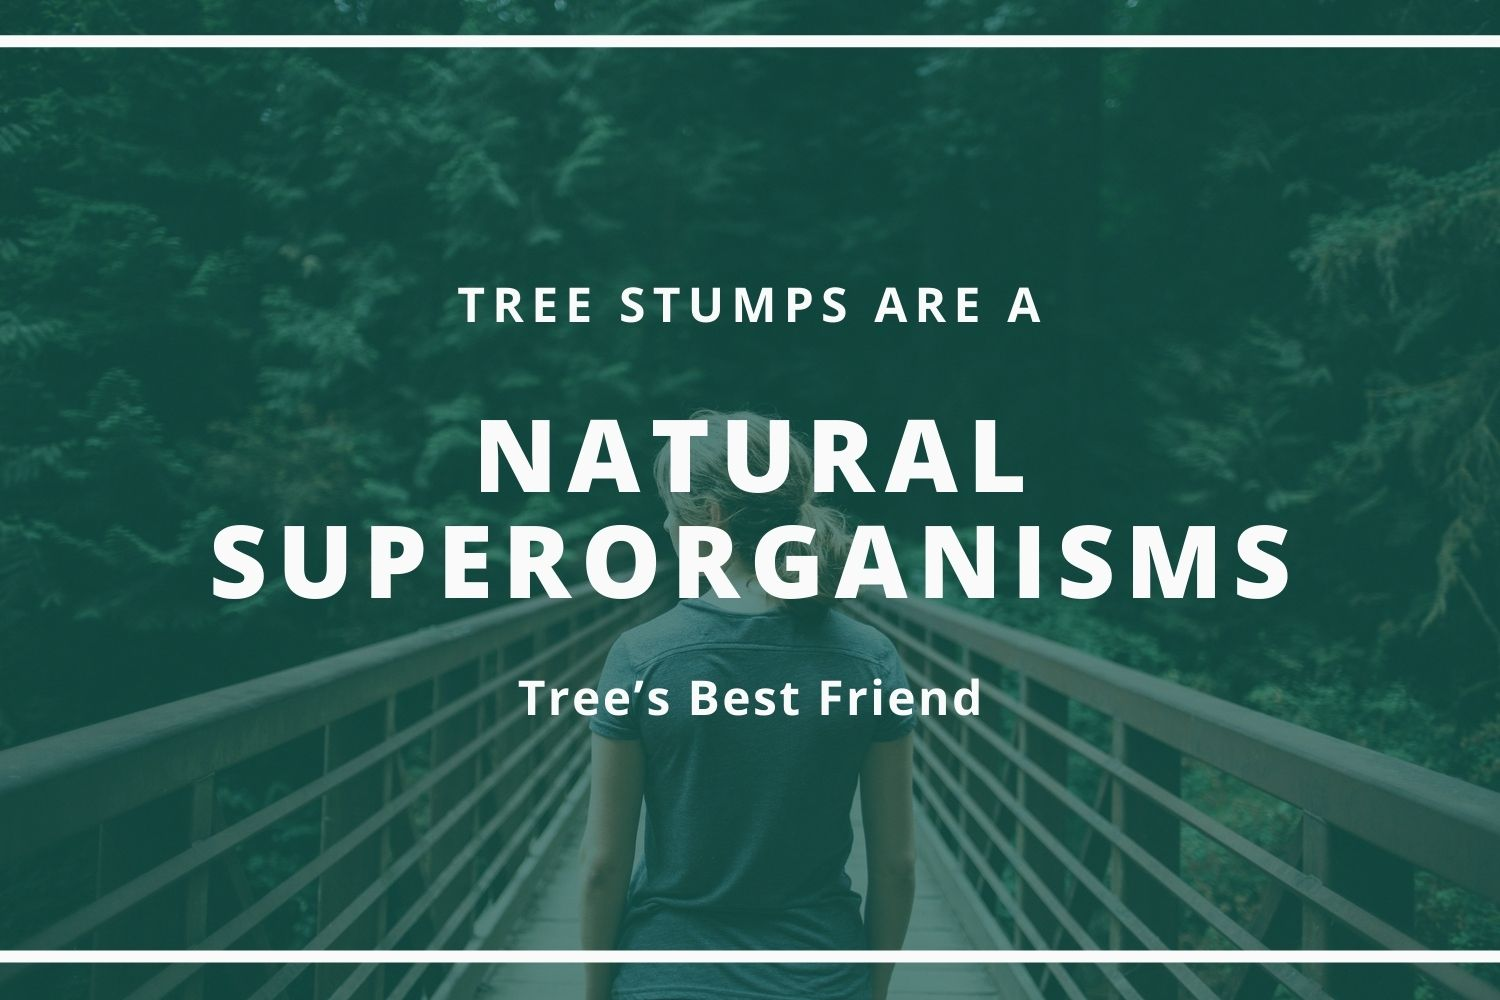 Tree Stumps Are A Tree's Best Friend – Natural Superorganisms